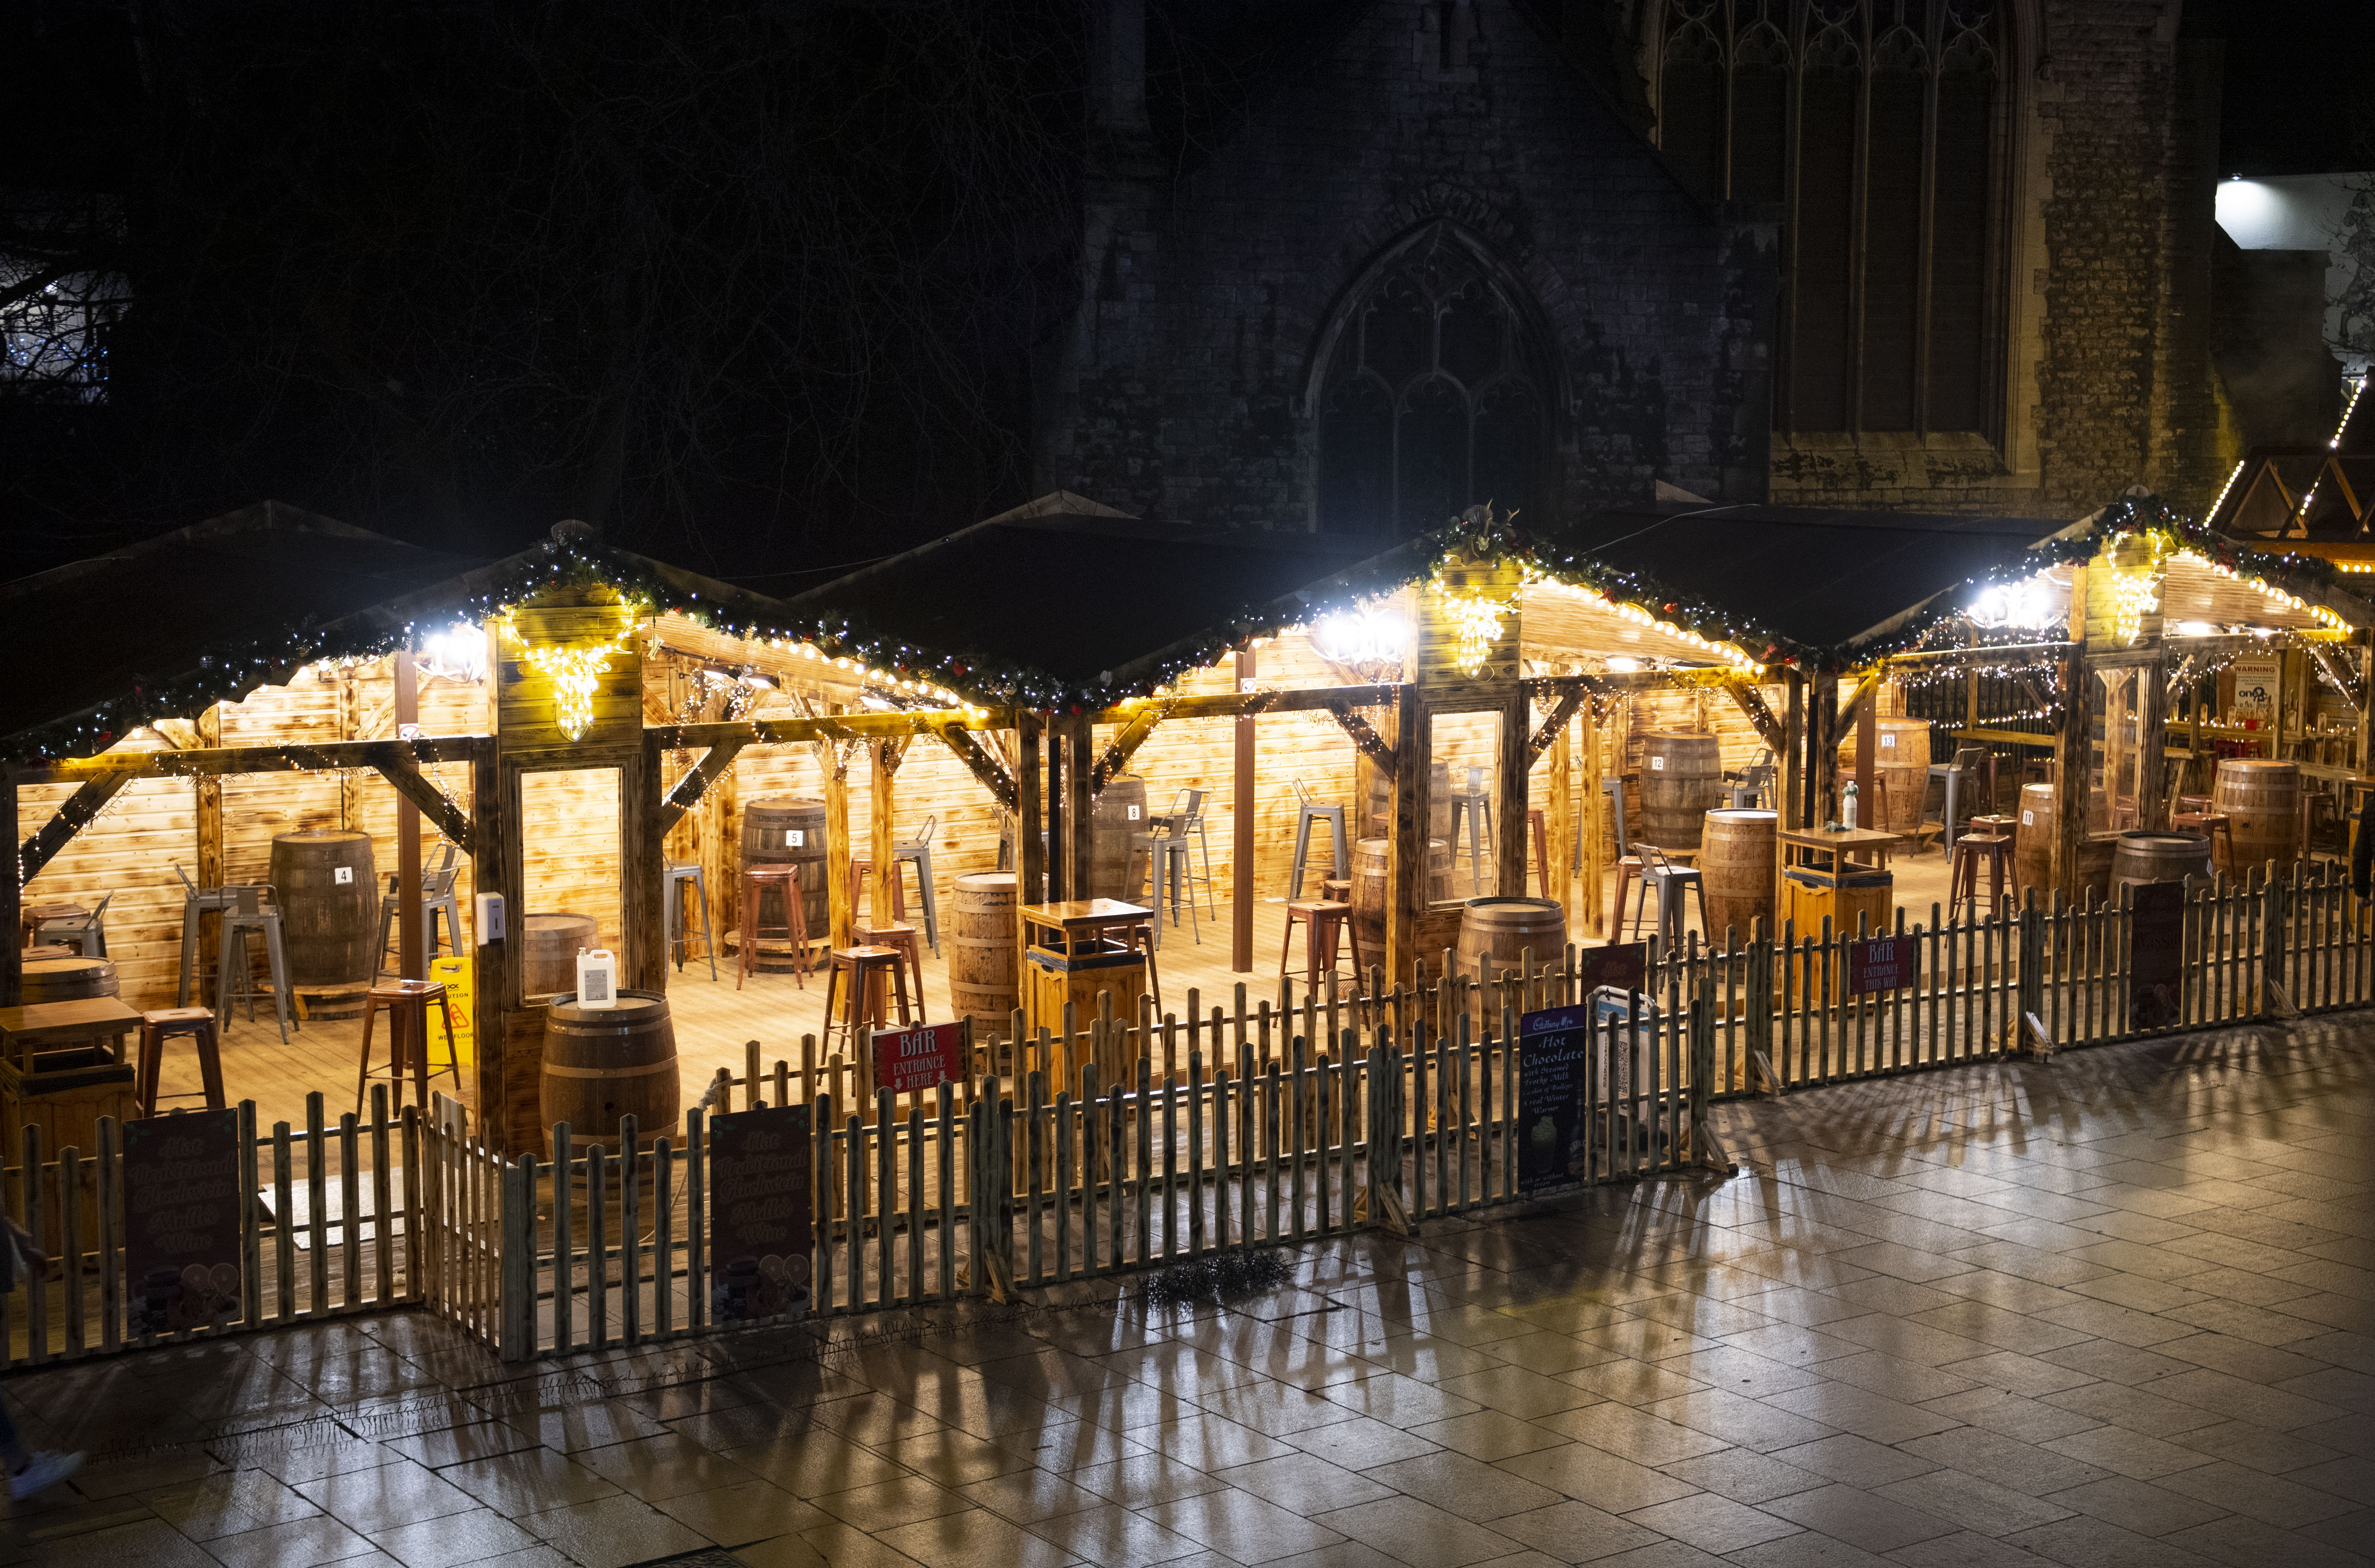 CARDIFF, WALES - DECEMBER 04: A general view of an empty Christmas market bar on the Hayes on December 4, 2020 in Cardiff, Wales. Following a firebreak period that ran from October 23 to November 9 the Welsh Government have introduced new rules which will prevent pubs, restaurants and cafes from selling alcohol at any time from 6pm on Friday. The rules will be reviewed on December 17. (Photo by Matthew Horwood/Getty Images)